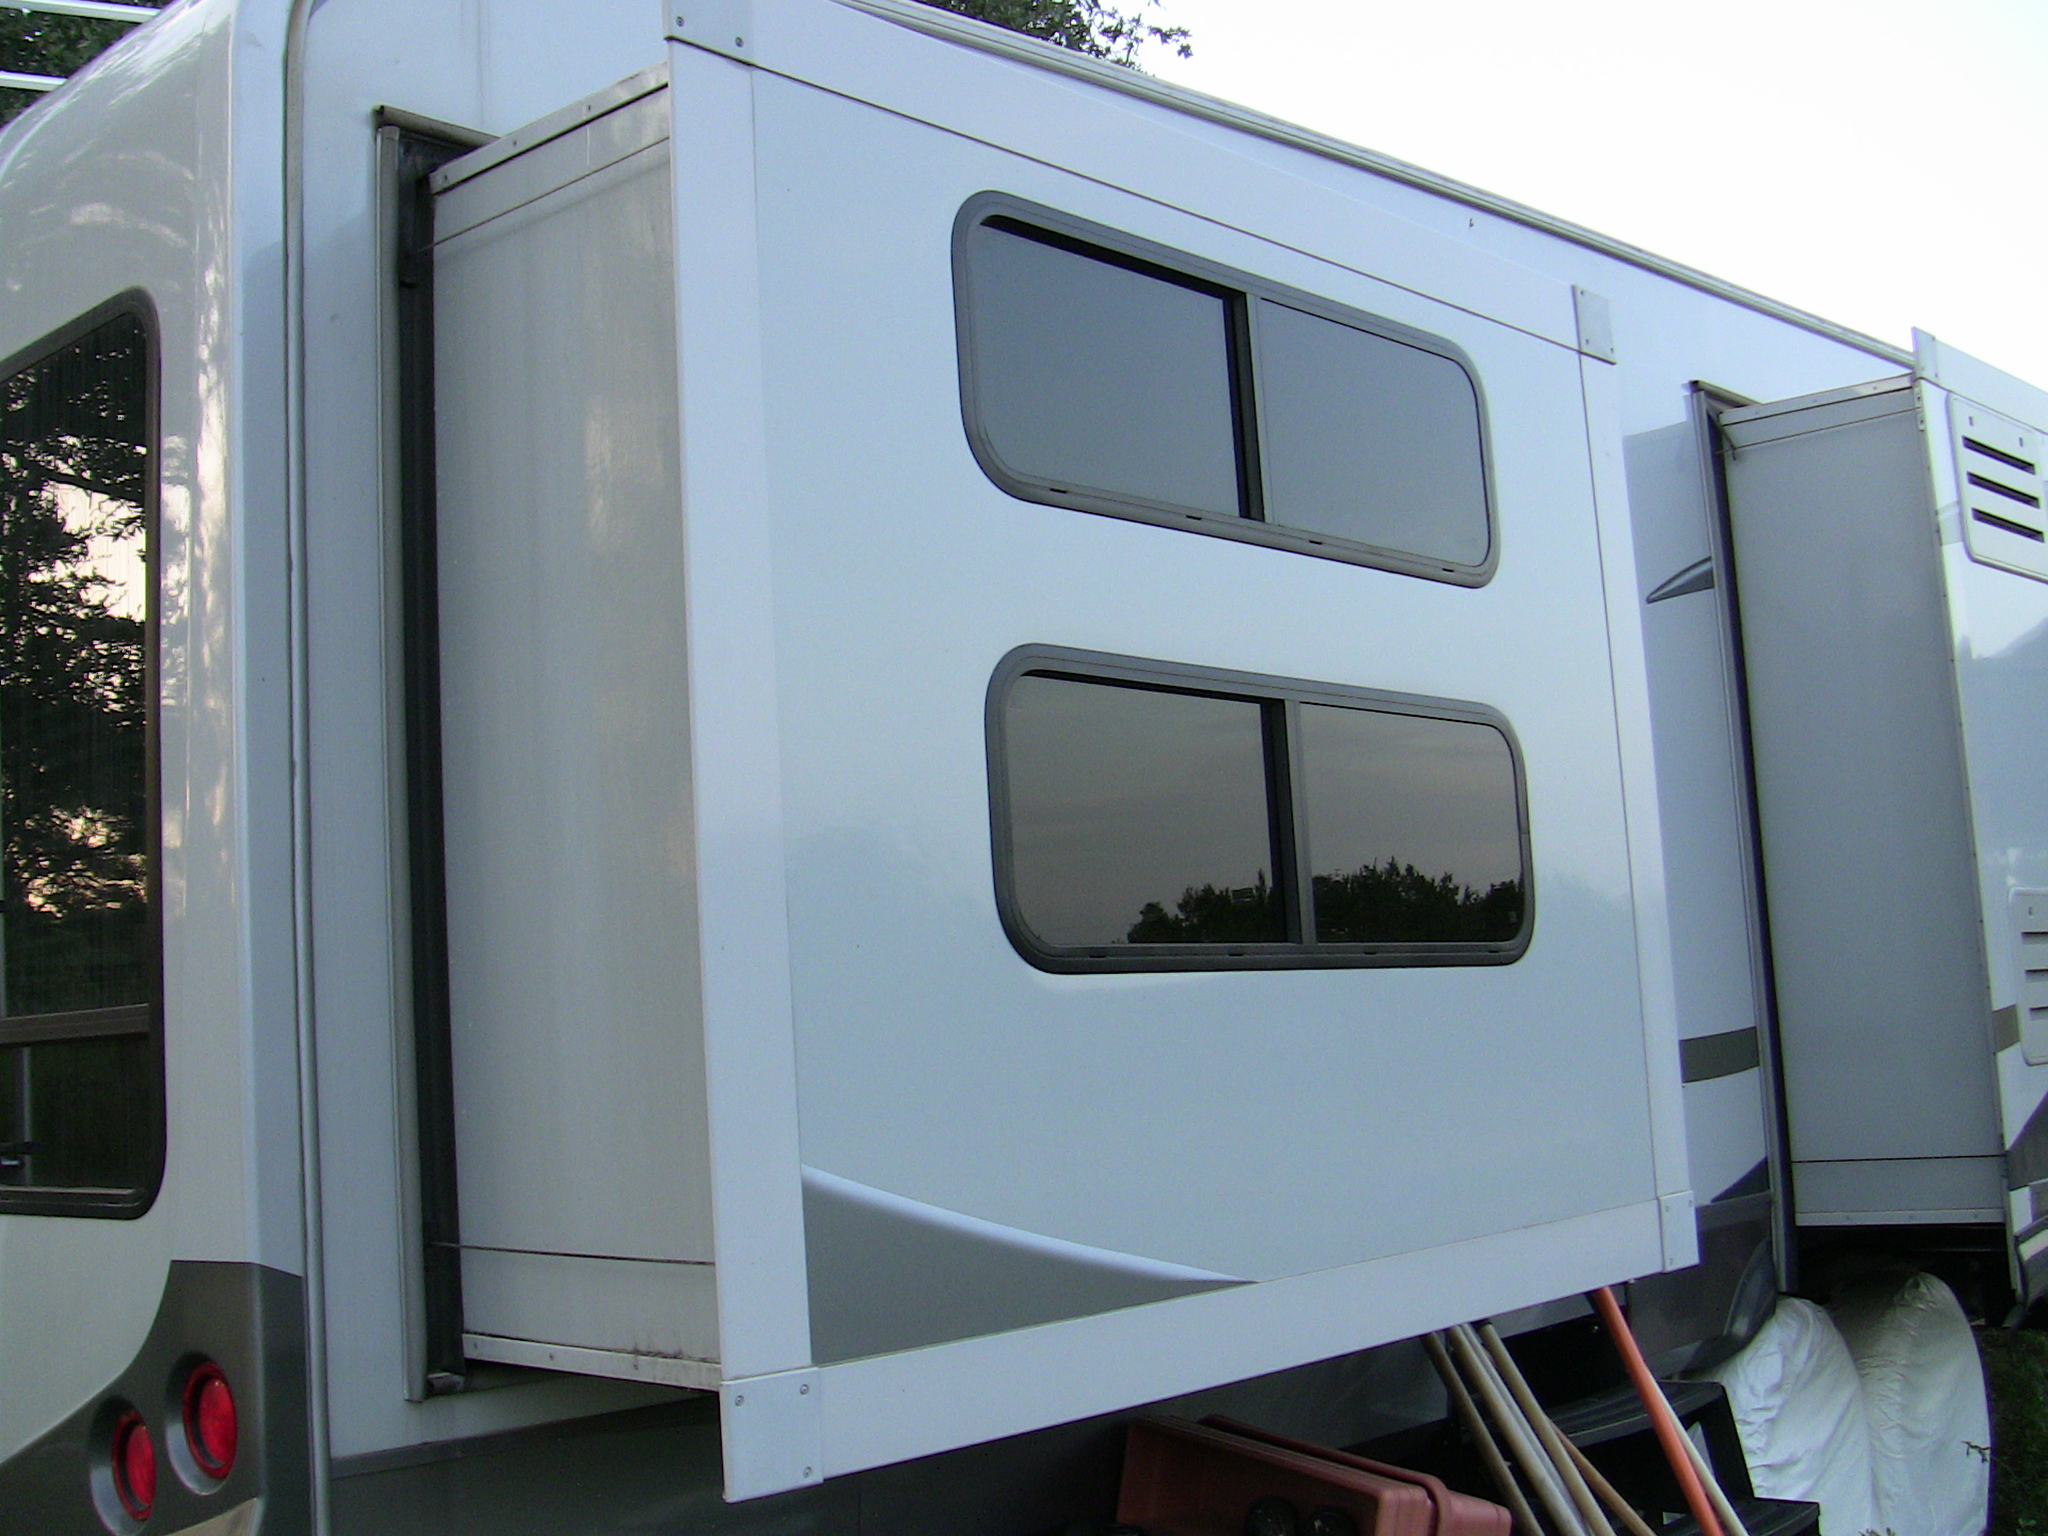 Wonderful  06 Tent Camper Trailers Jayco Select Tent Camper Trailers Jayco Select